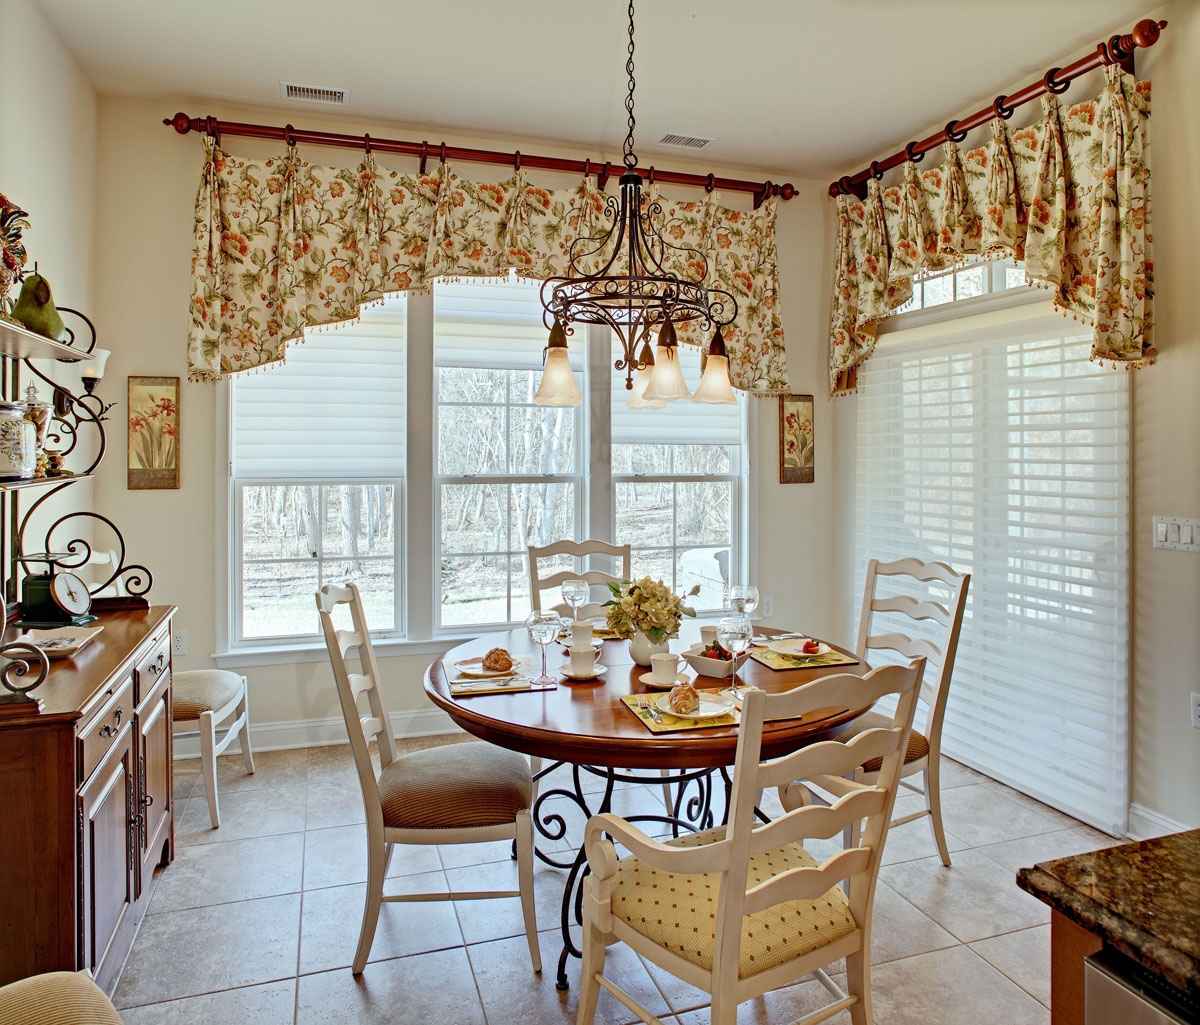 Some Ideas Tuscan Window Treatments - HOUSE DECORATIONS AND FURNITURE